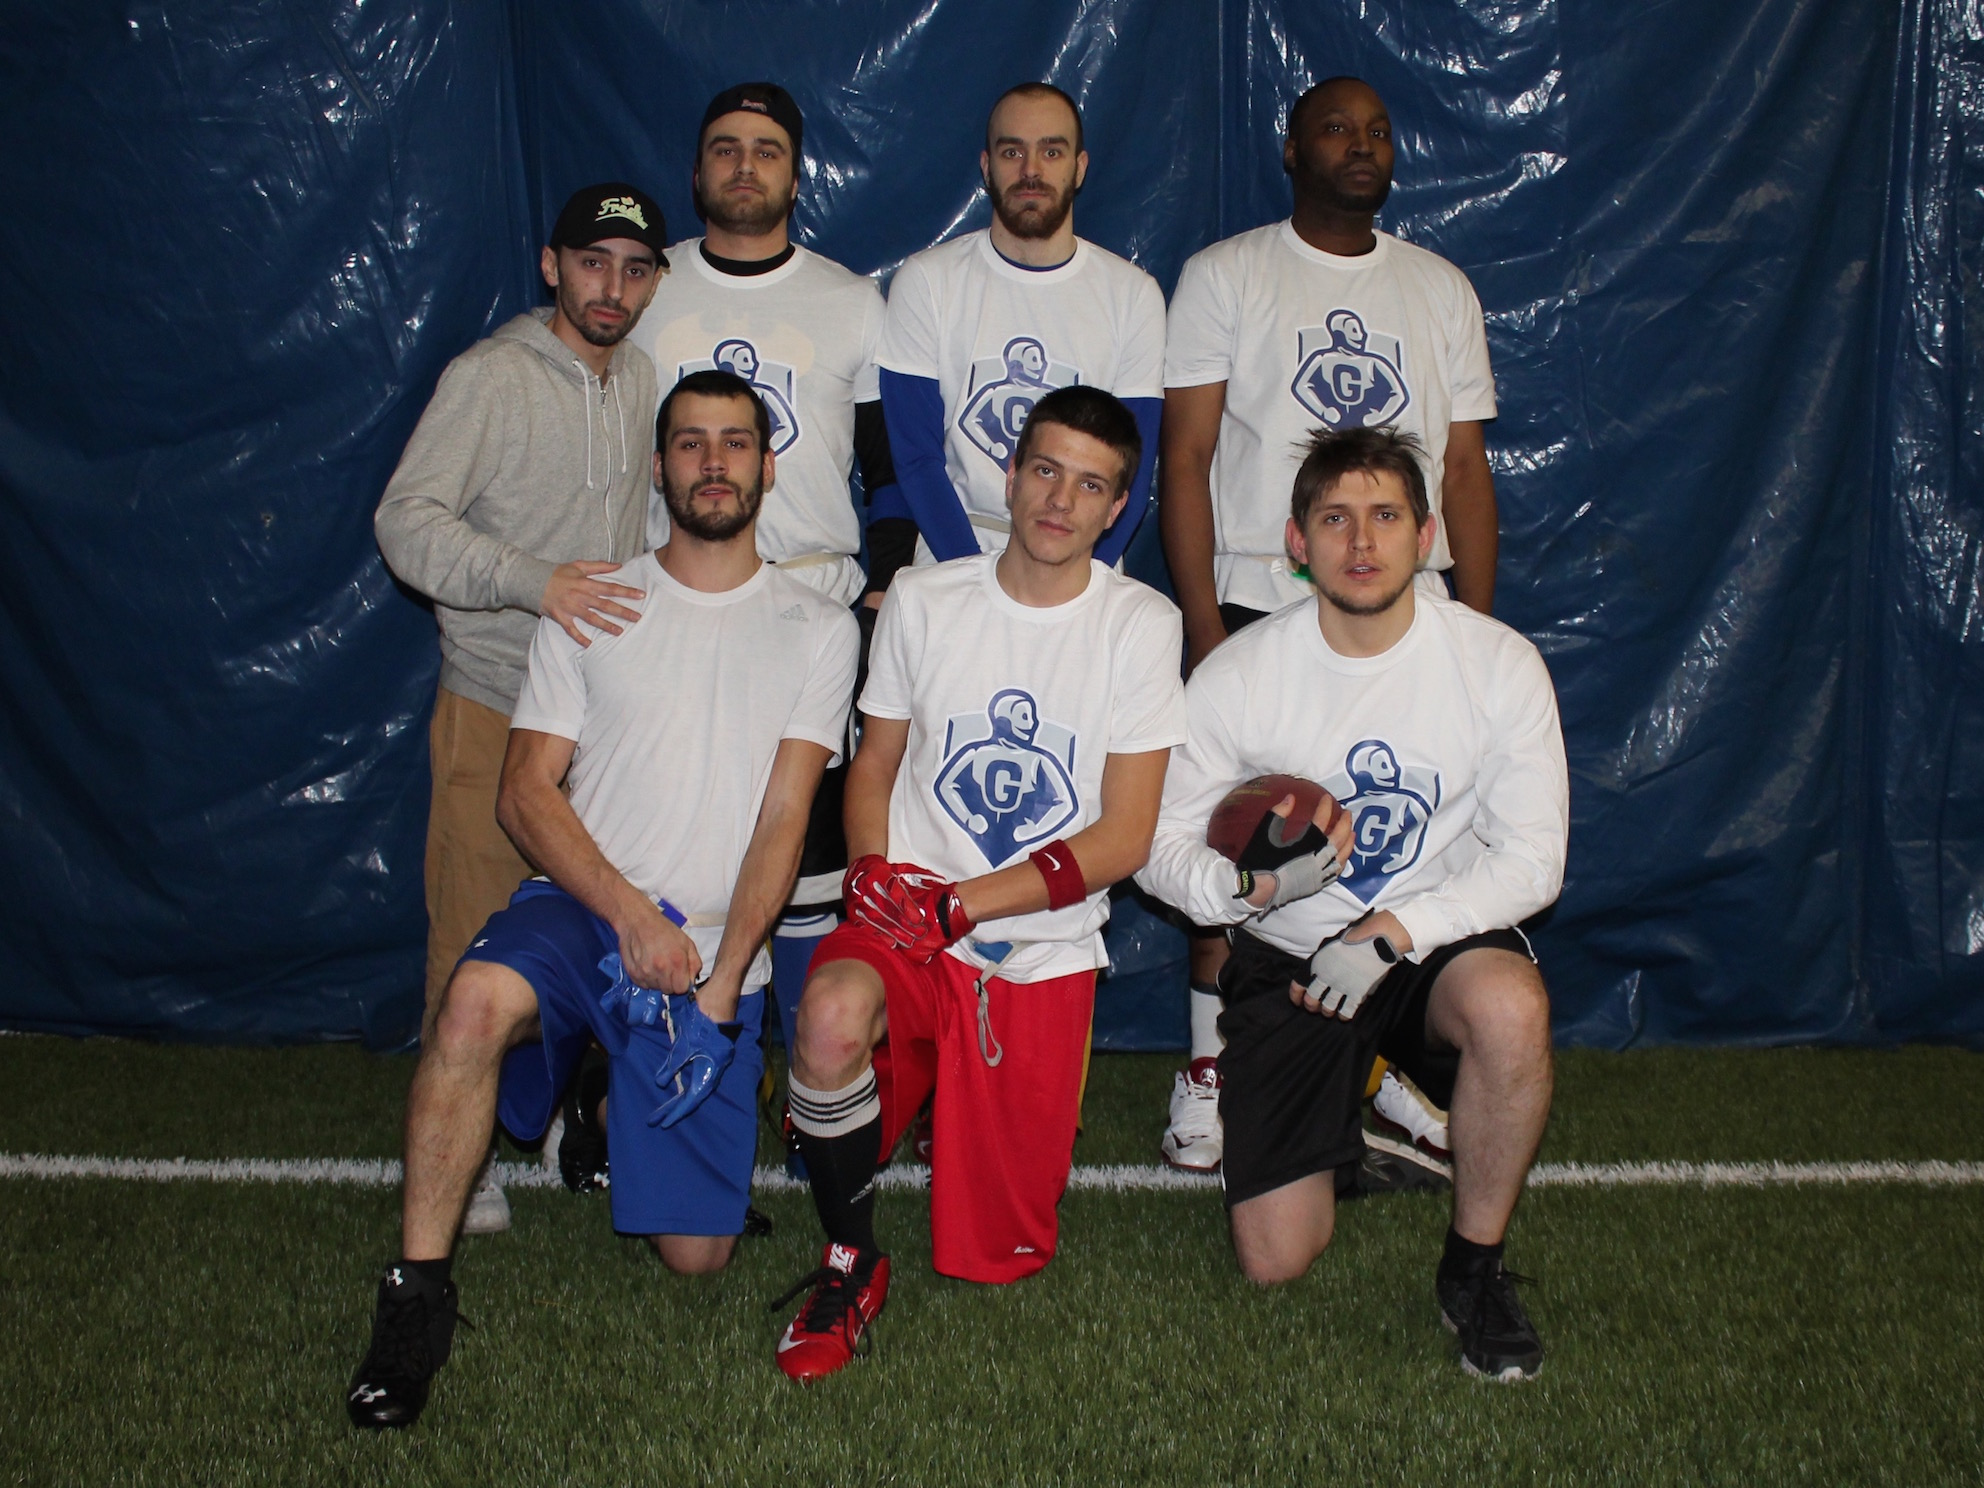 DIVISION 6 CHAMPIONSHIP GAME REVIEW